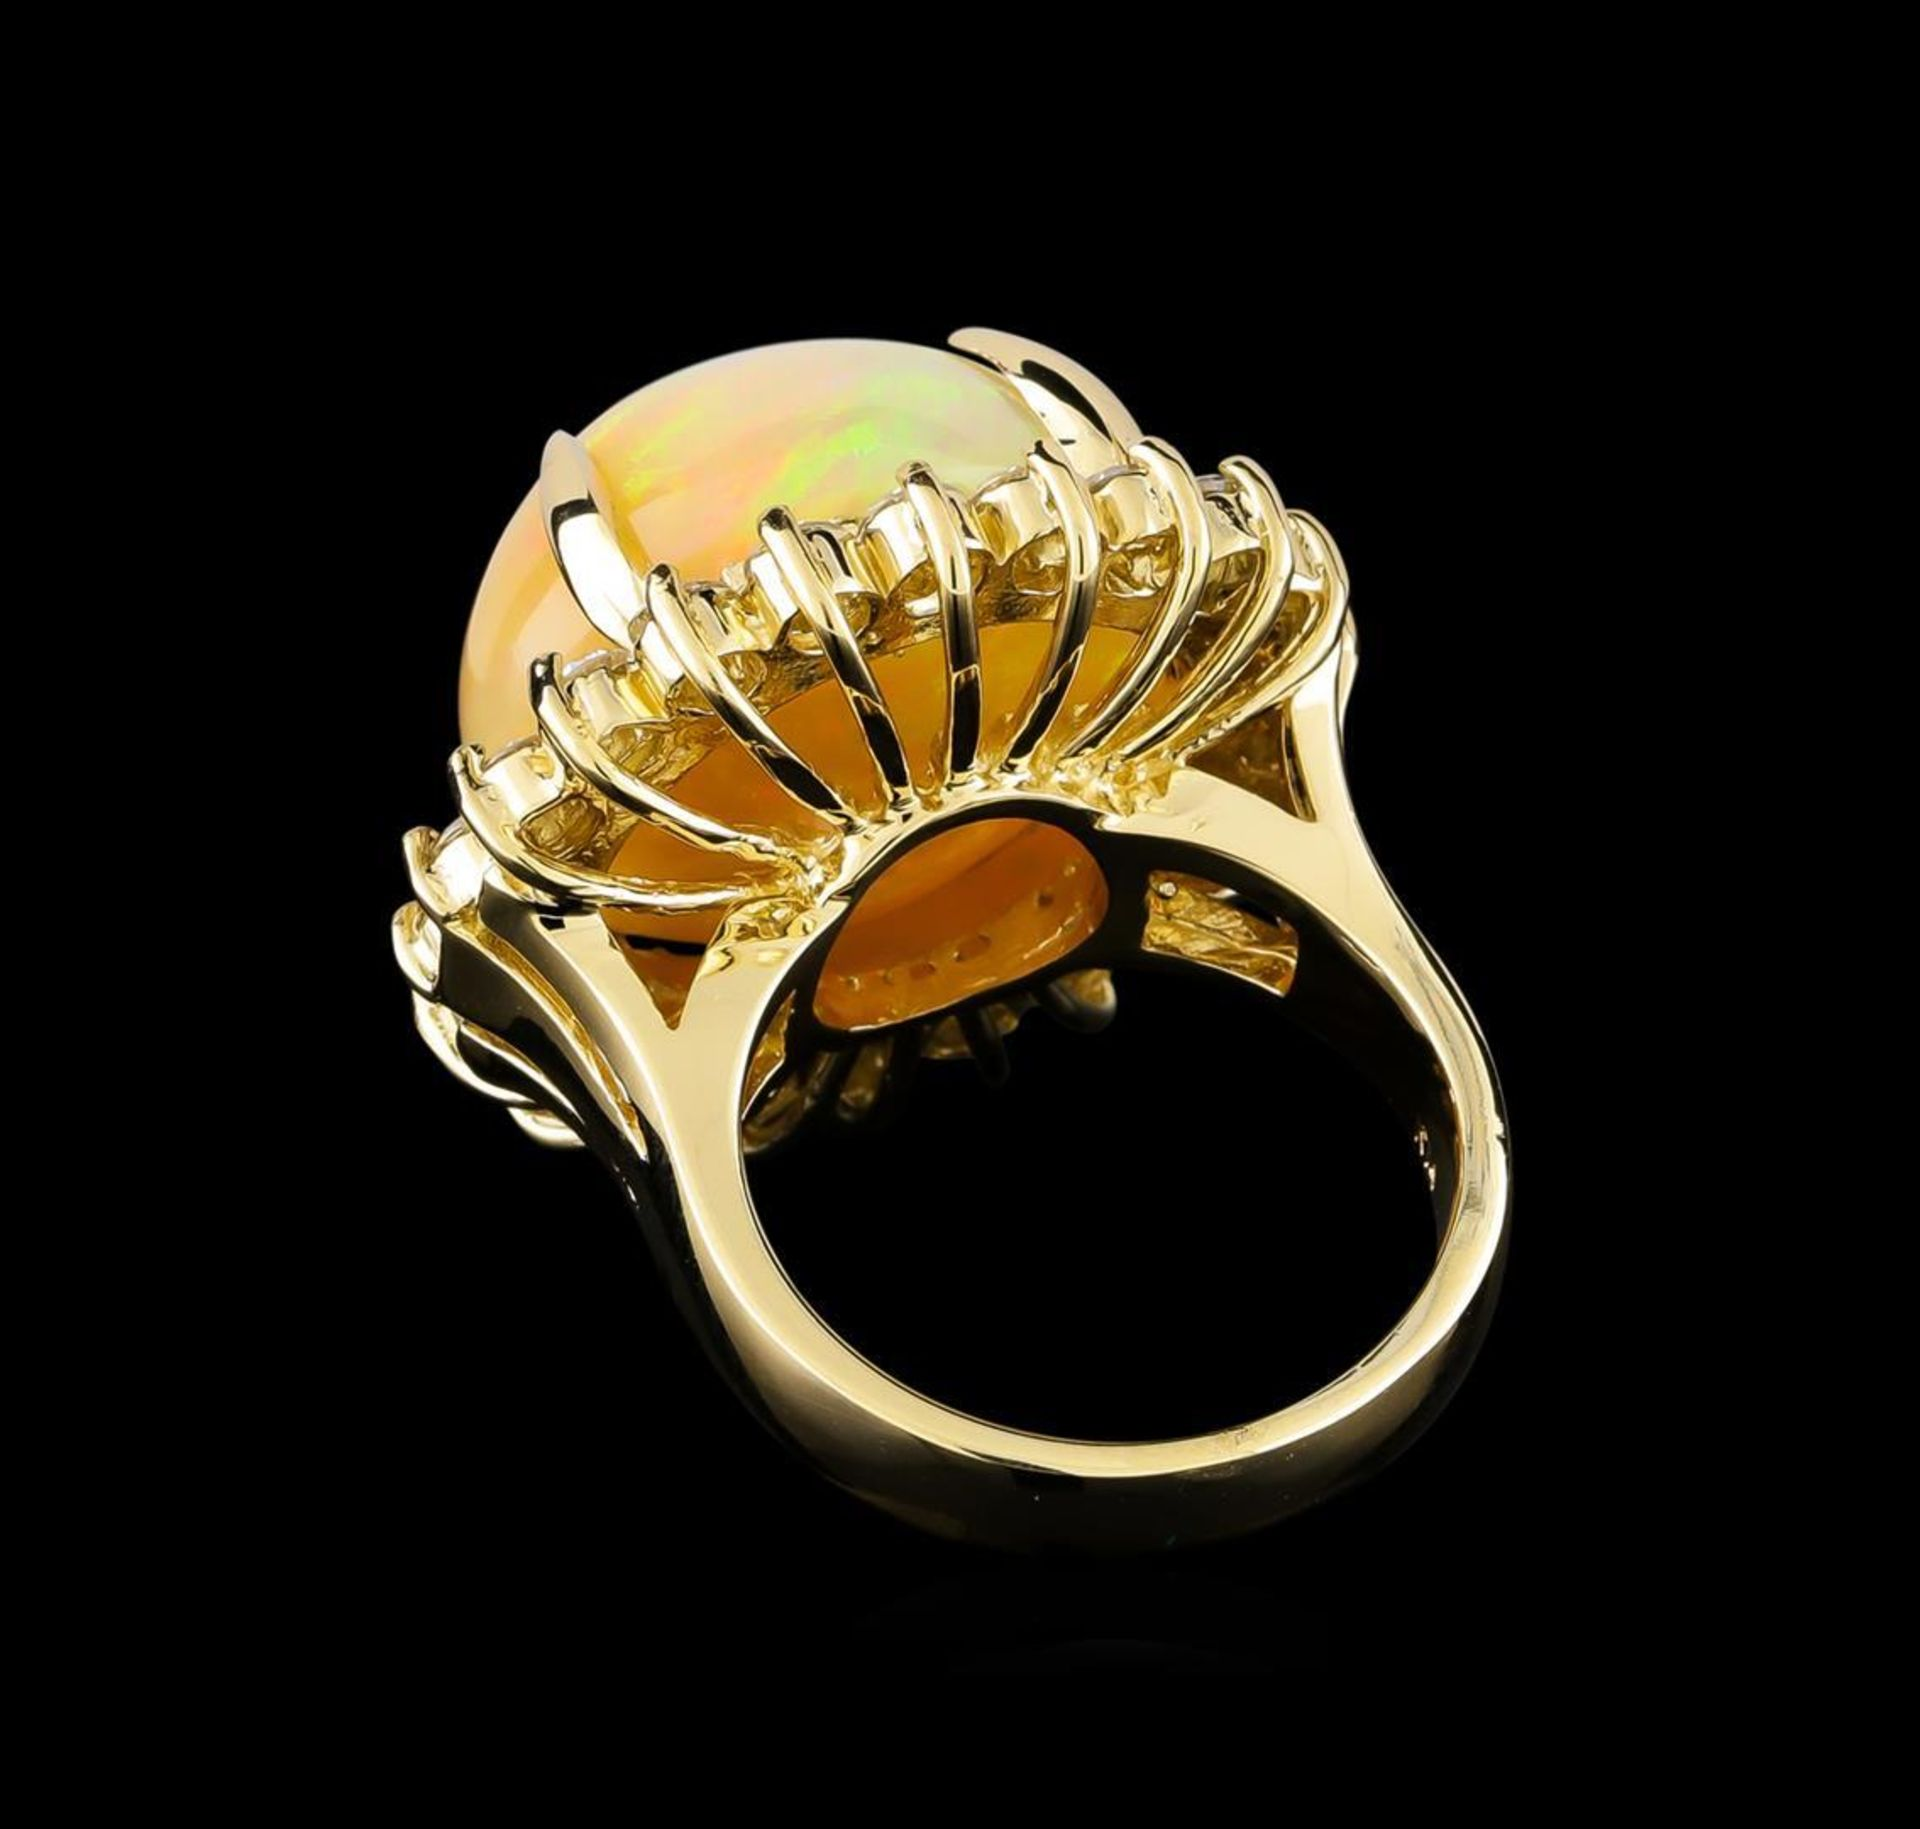 19.85 ctw Opal and Diamond Ring - 14KT Yellow Gold - Image 3 of 5